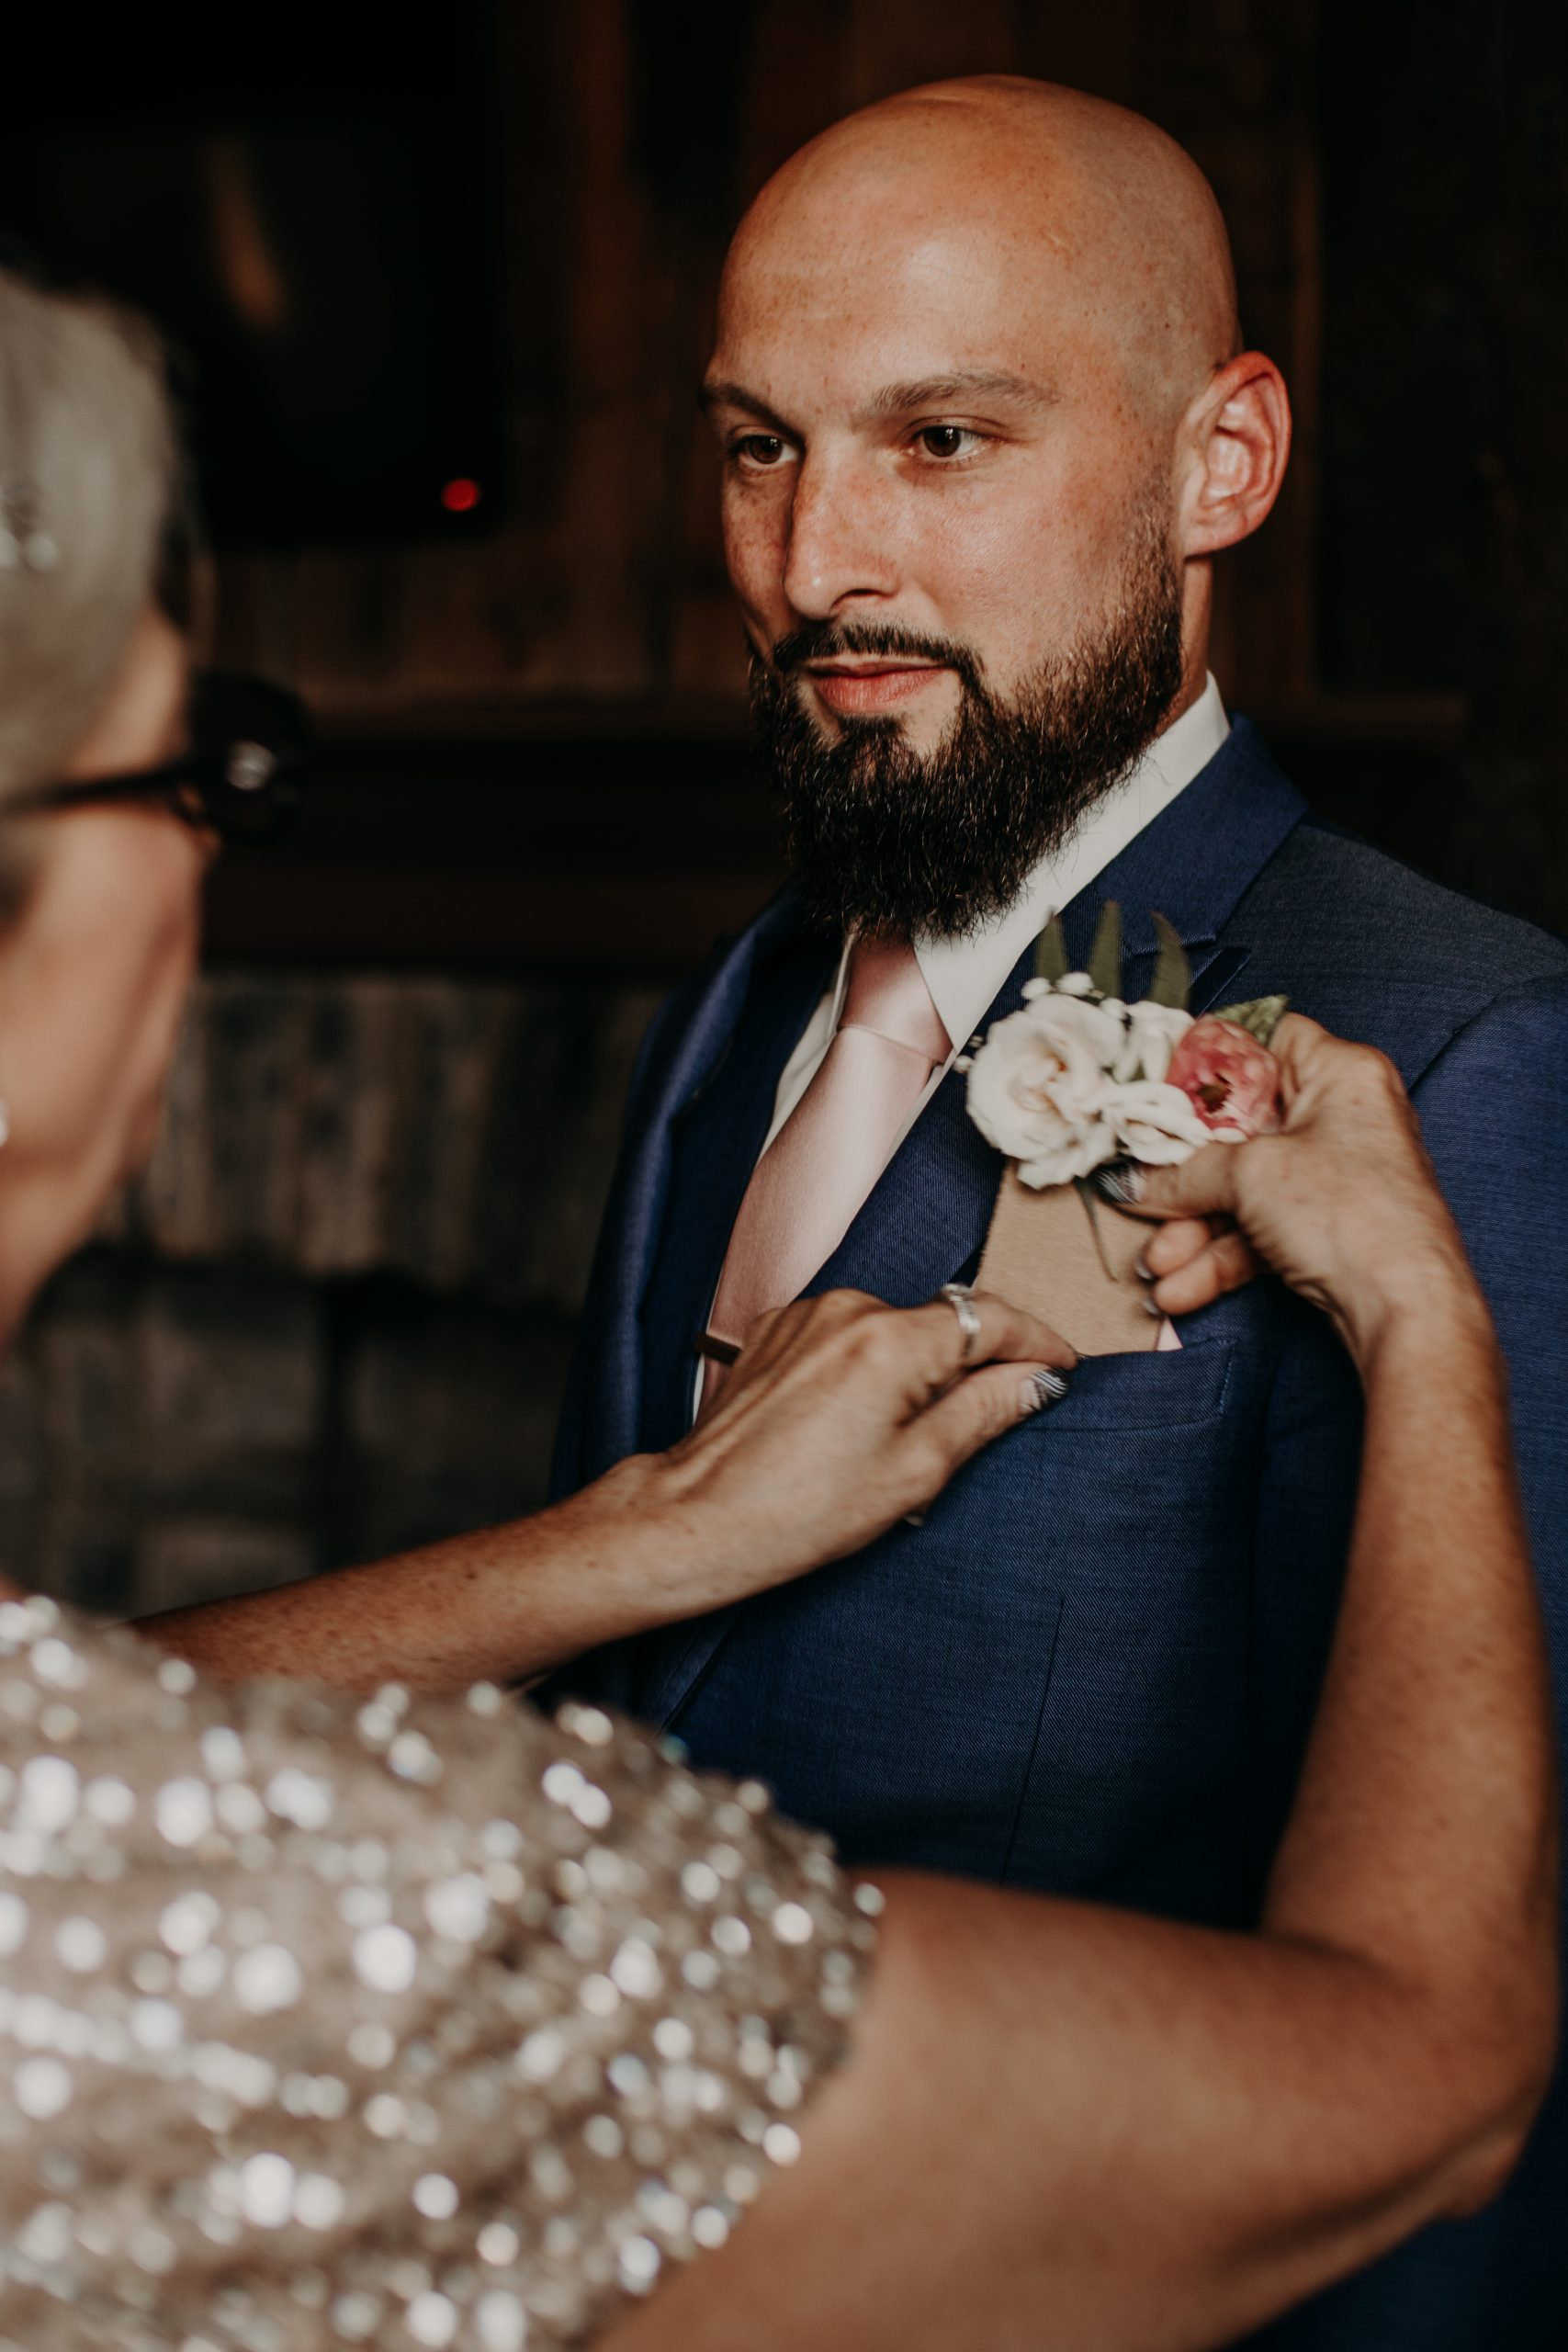 The grooms mother pins his corsage to the pocket of his navy blue jacket. Christine and Richard wed on the Chestnut Hill Villa grounds on May of 2019. This organic ethereal styled wedding was captured by Garnet Dahlia Photography and featured on Dream Weddings.